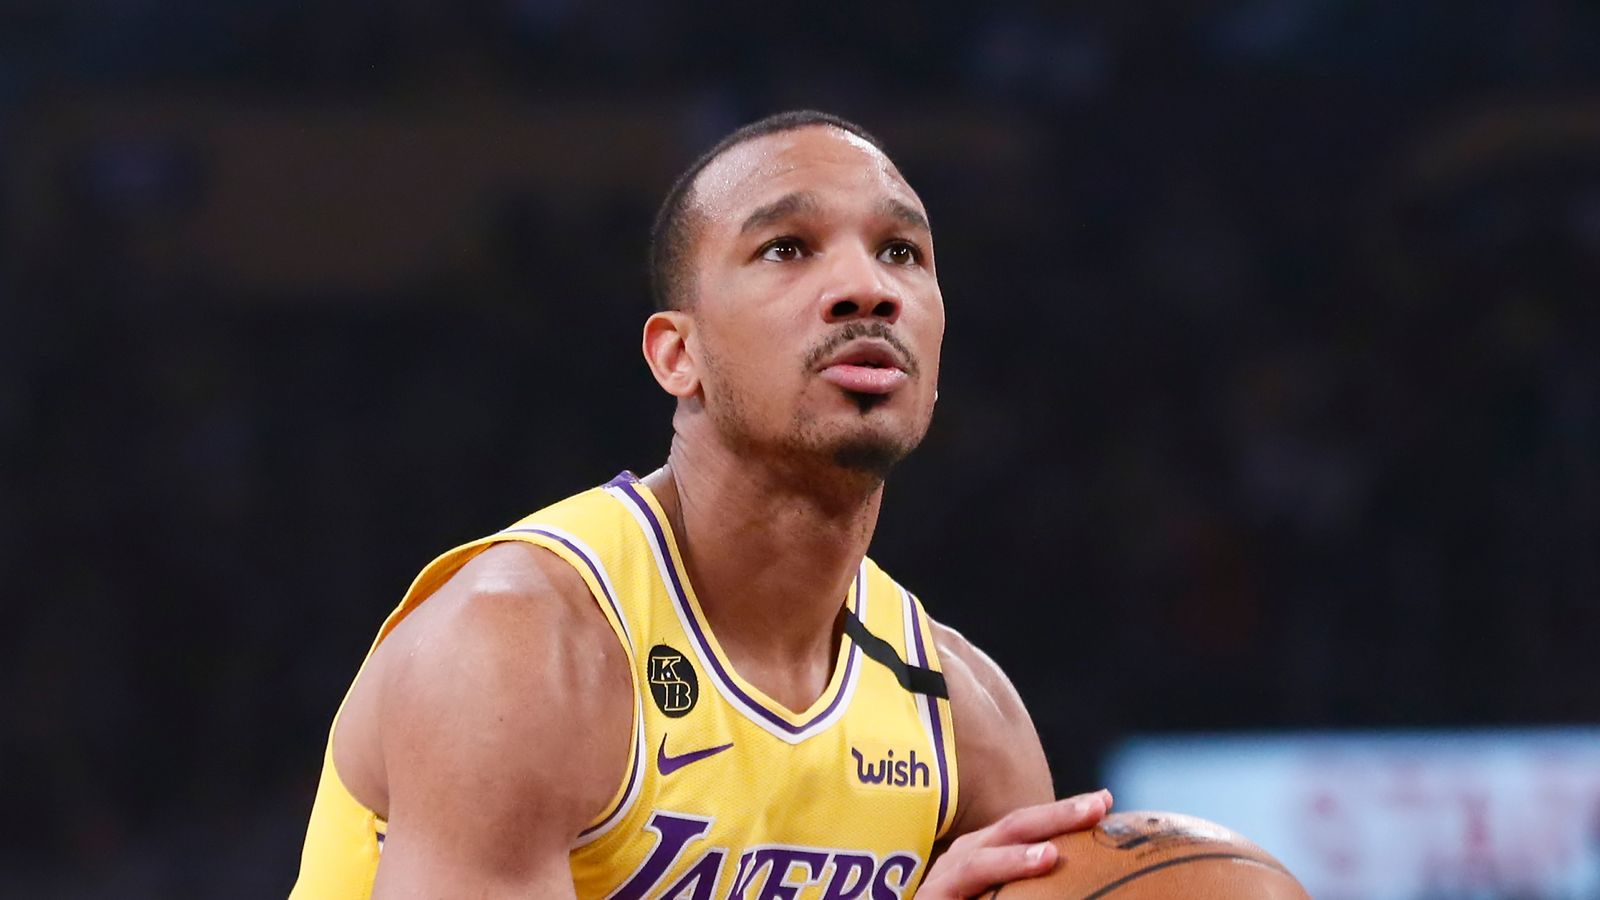 Photo of Avery Bradley: LA Lakers guard to sit out NBA restart in Florida